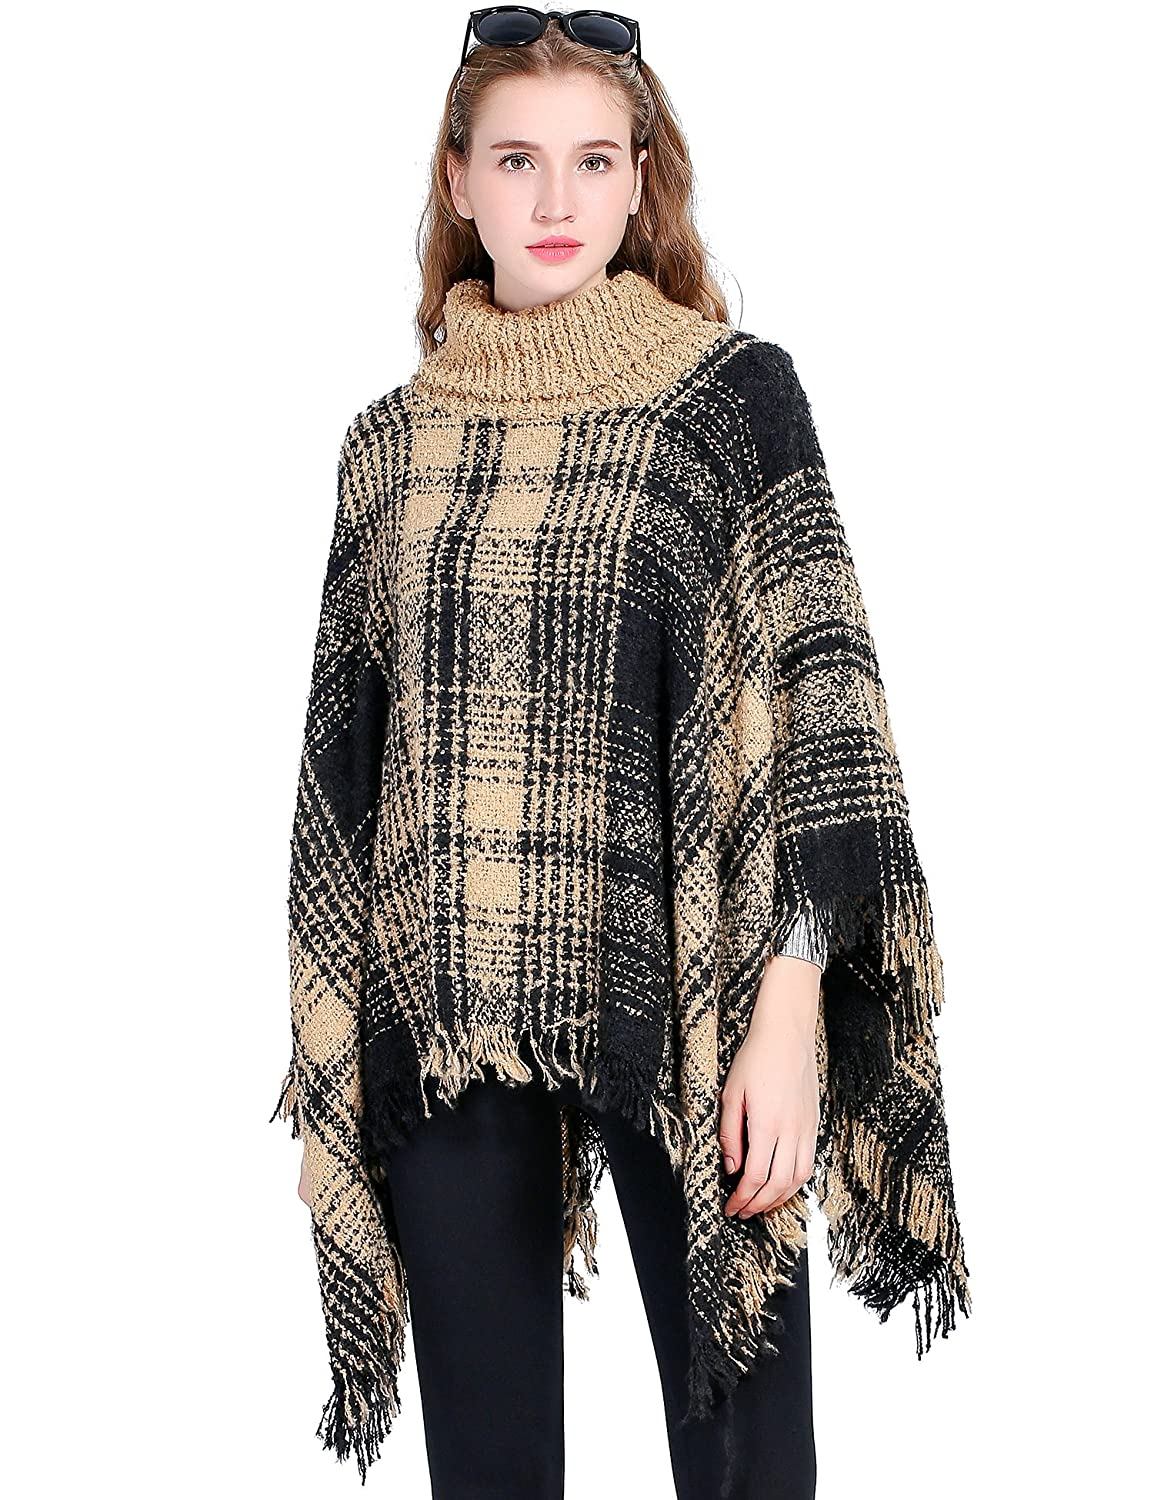 Womens Turtleneck Poncho Sweater Knitted Pullover Capes Tassel Pashmina Beautiful Four Season 039 80 Shawl Black And Yellow Plaid At Amazon Clothing Store